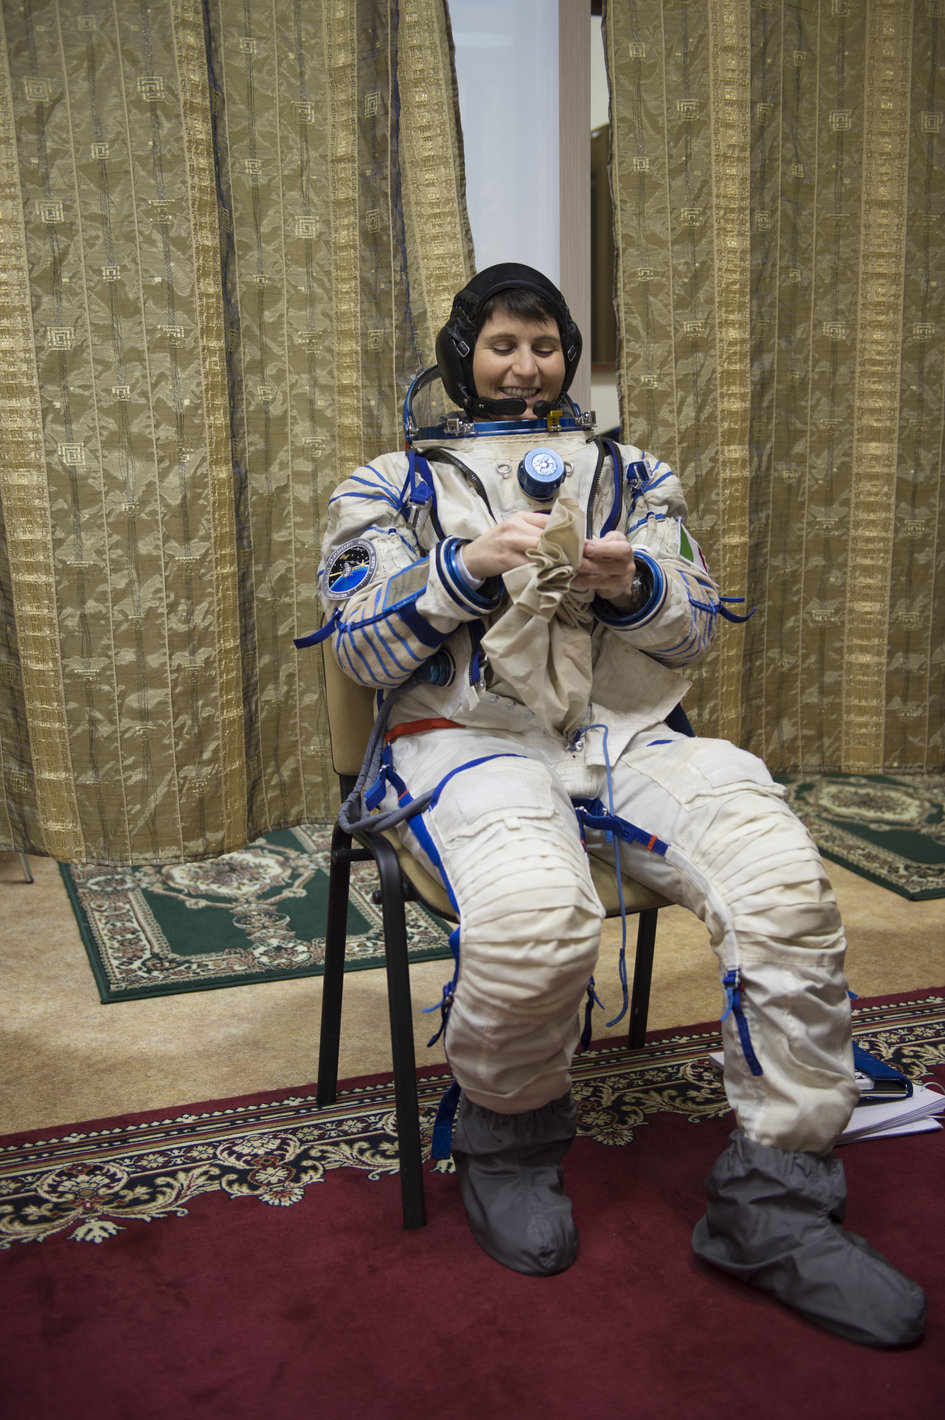 her space suit - photo #27